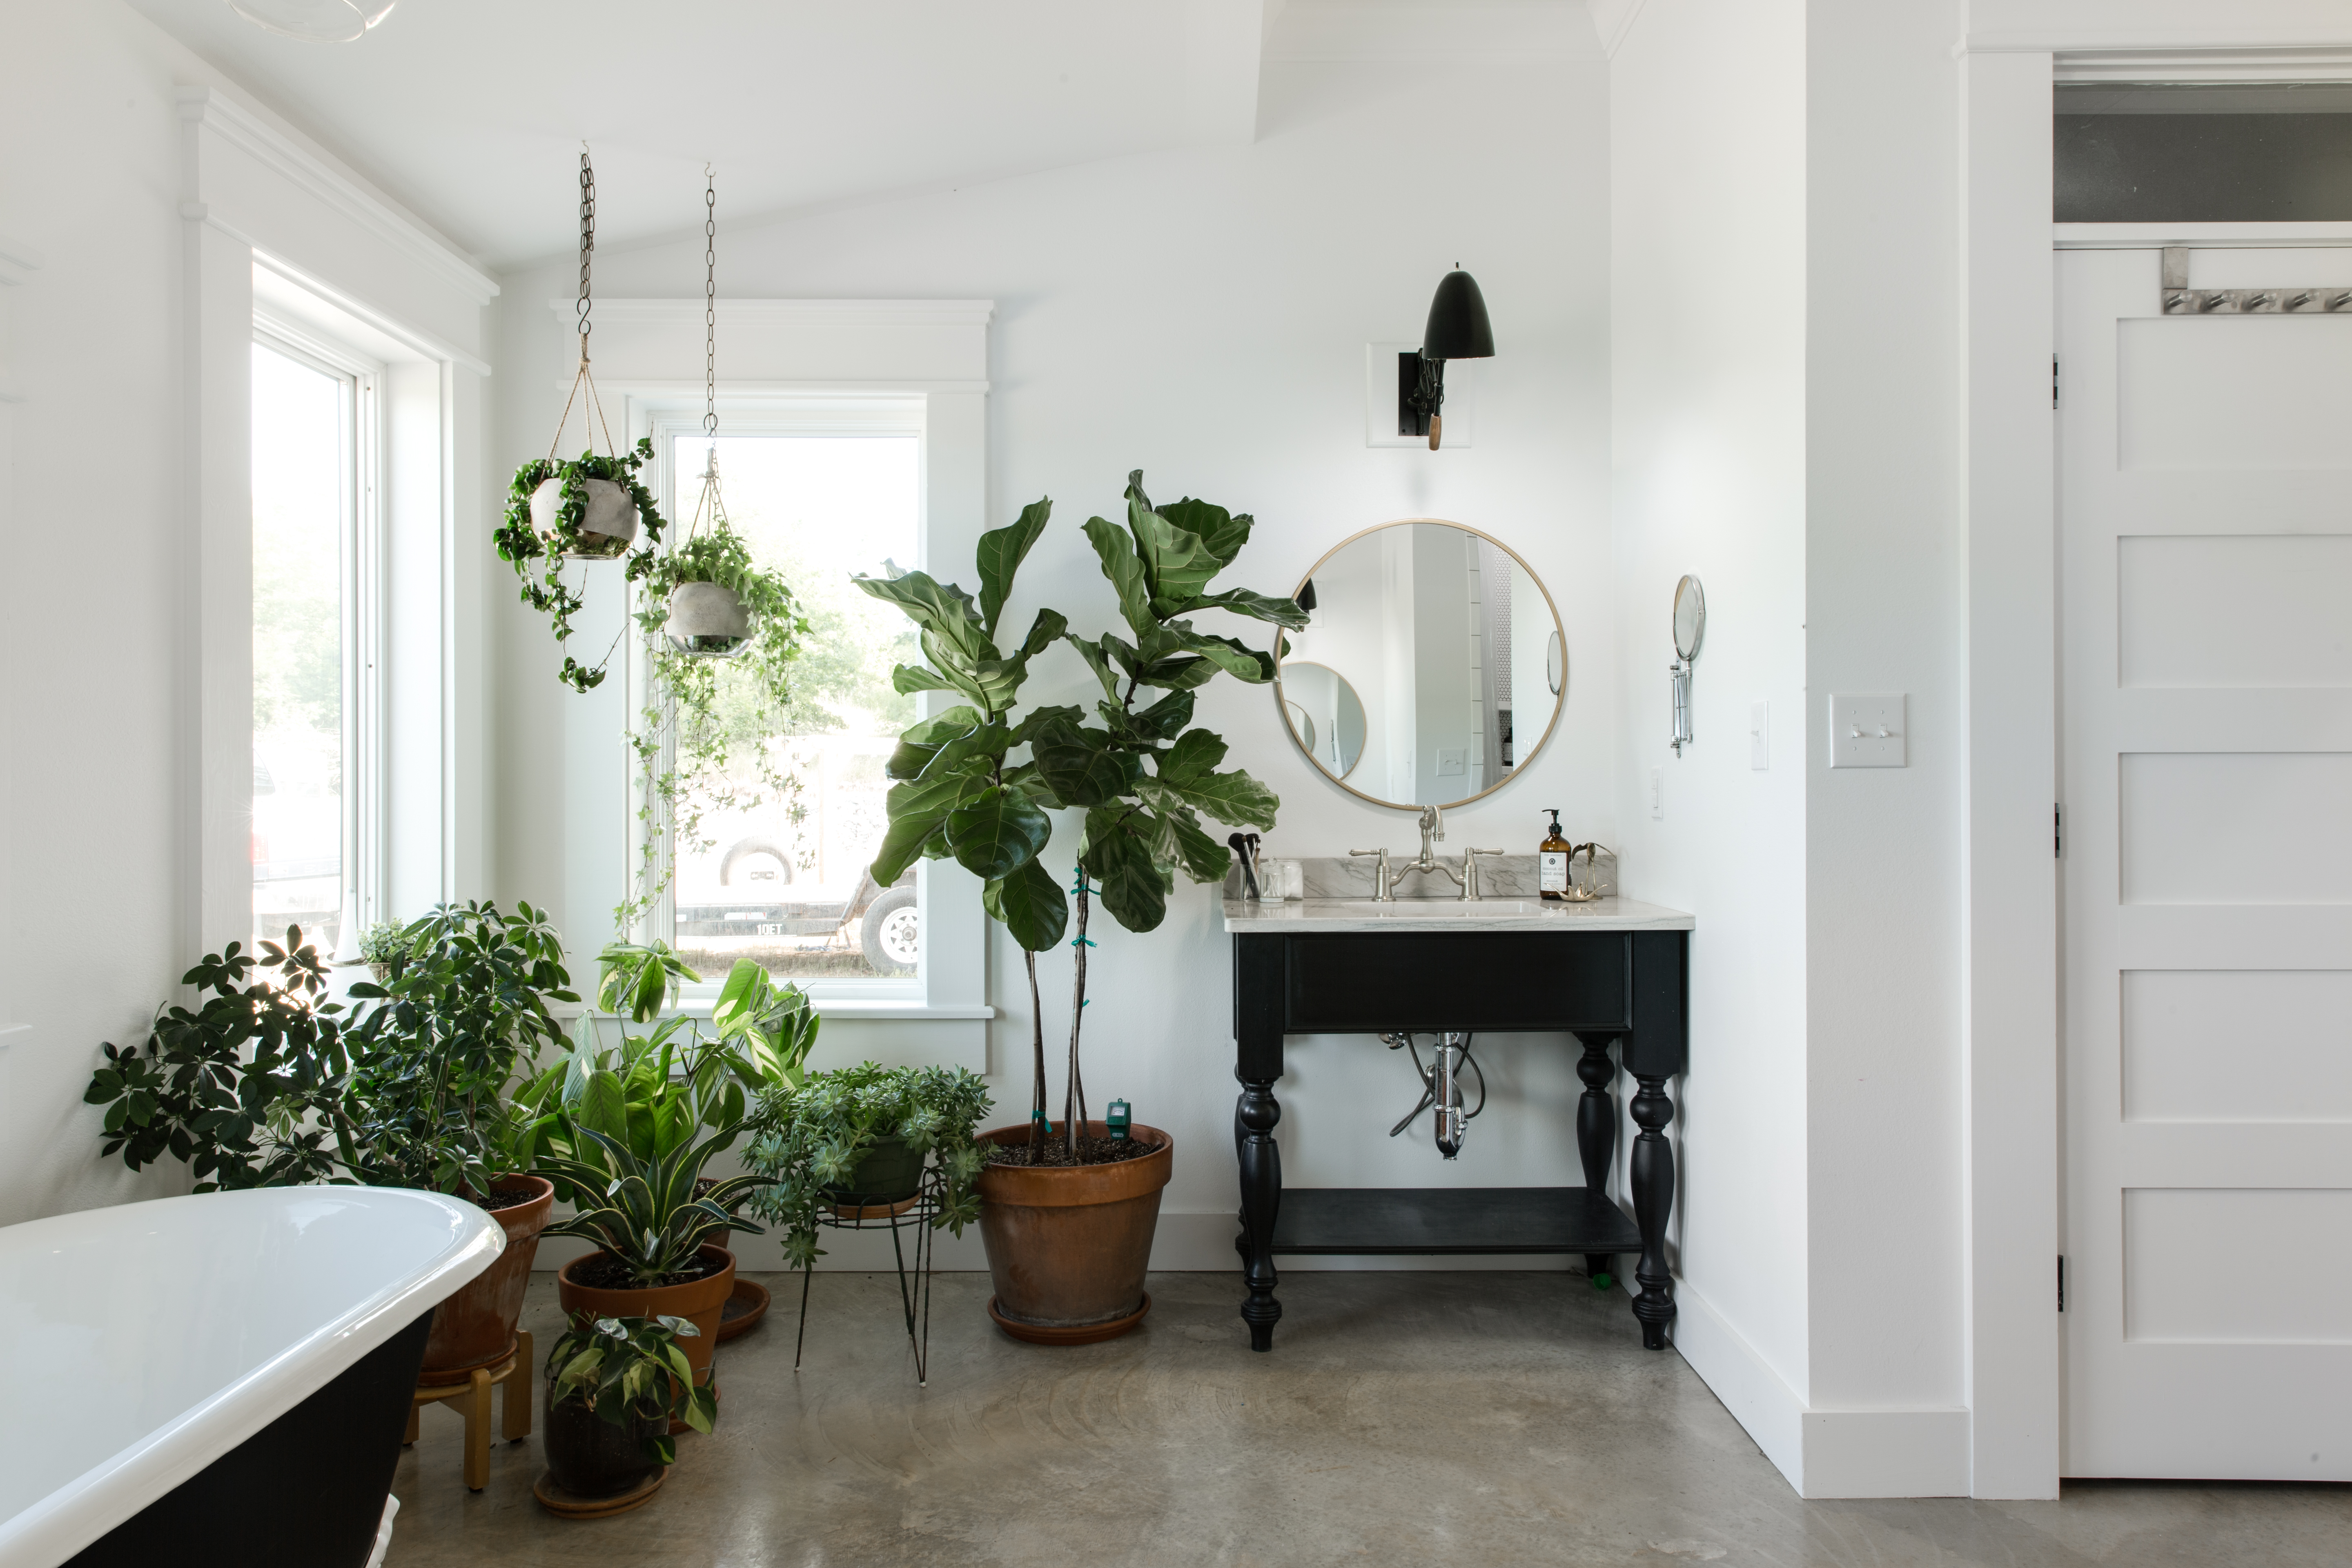 How to Take Care of Houseplants in the Winter: Our Top 10 ... House Plant Winter on winter fragrant plants, winter potted plants, winter deck plants, winter hibiscus, winter hardy plants, winter perennial plants, winter interest plants, winter patio plants, winter outdoor plants, winter container plants, winter flowering plants, winter house cookies, great winter plants, winter yard plants, winter porch plants, winter planter plants, winter house art, winter shade plants, winter blooming plants, winter house landscaping,